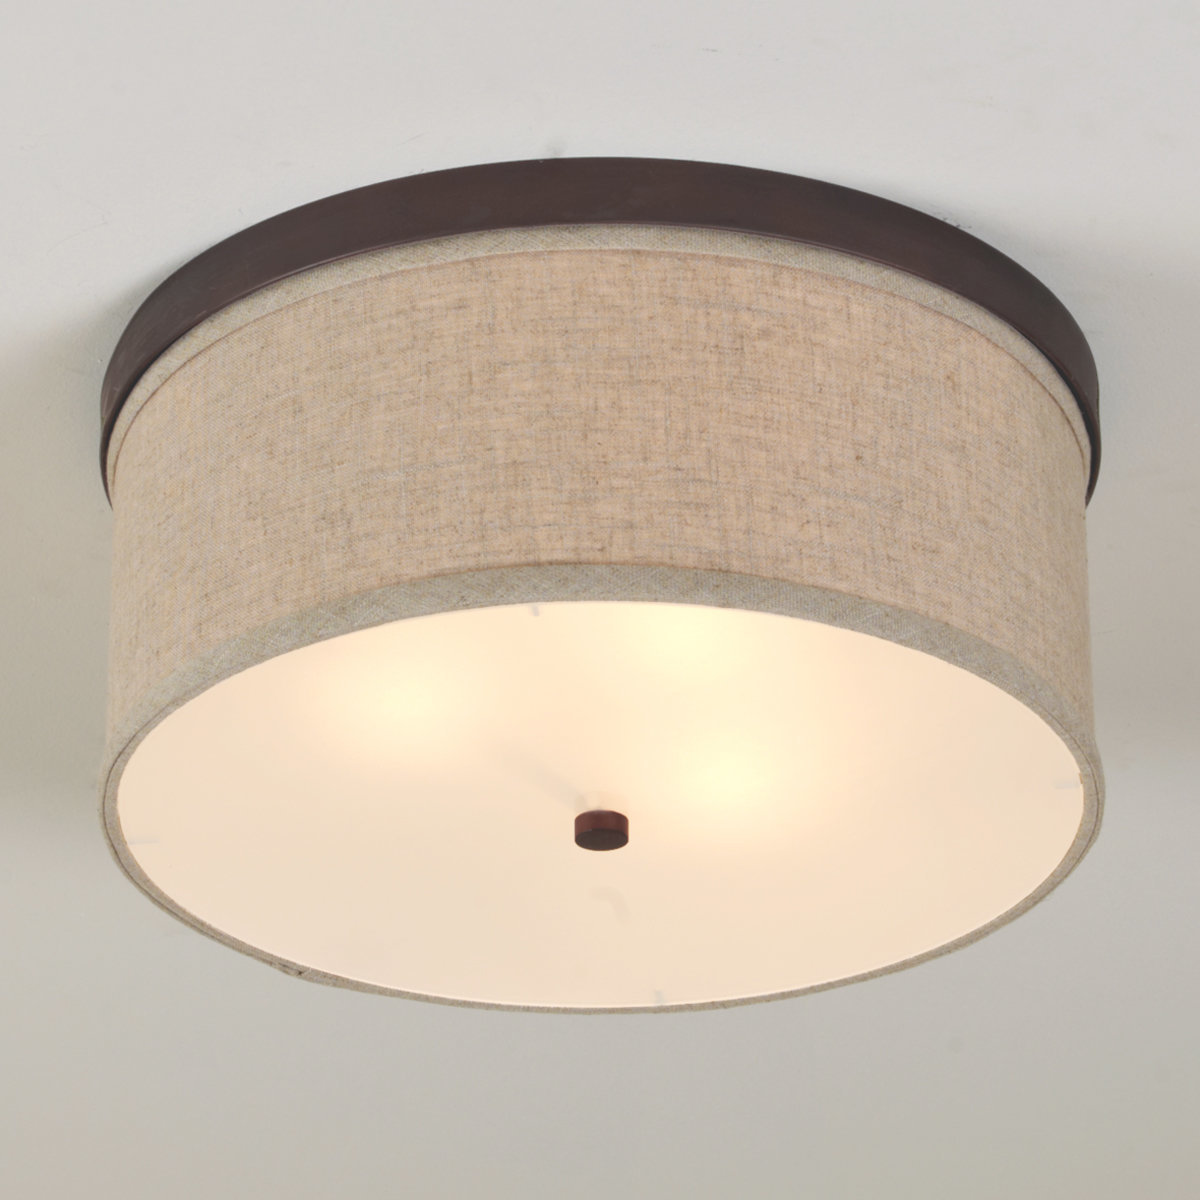 ceiling light shades springfield linen shade ceiling light bronze NTAFBLR